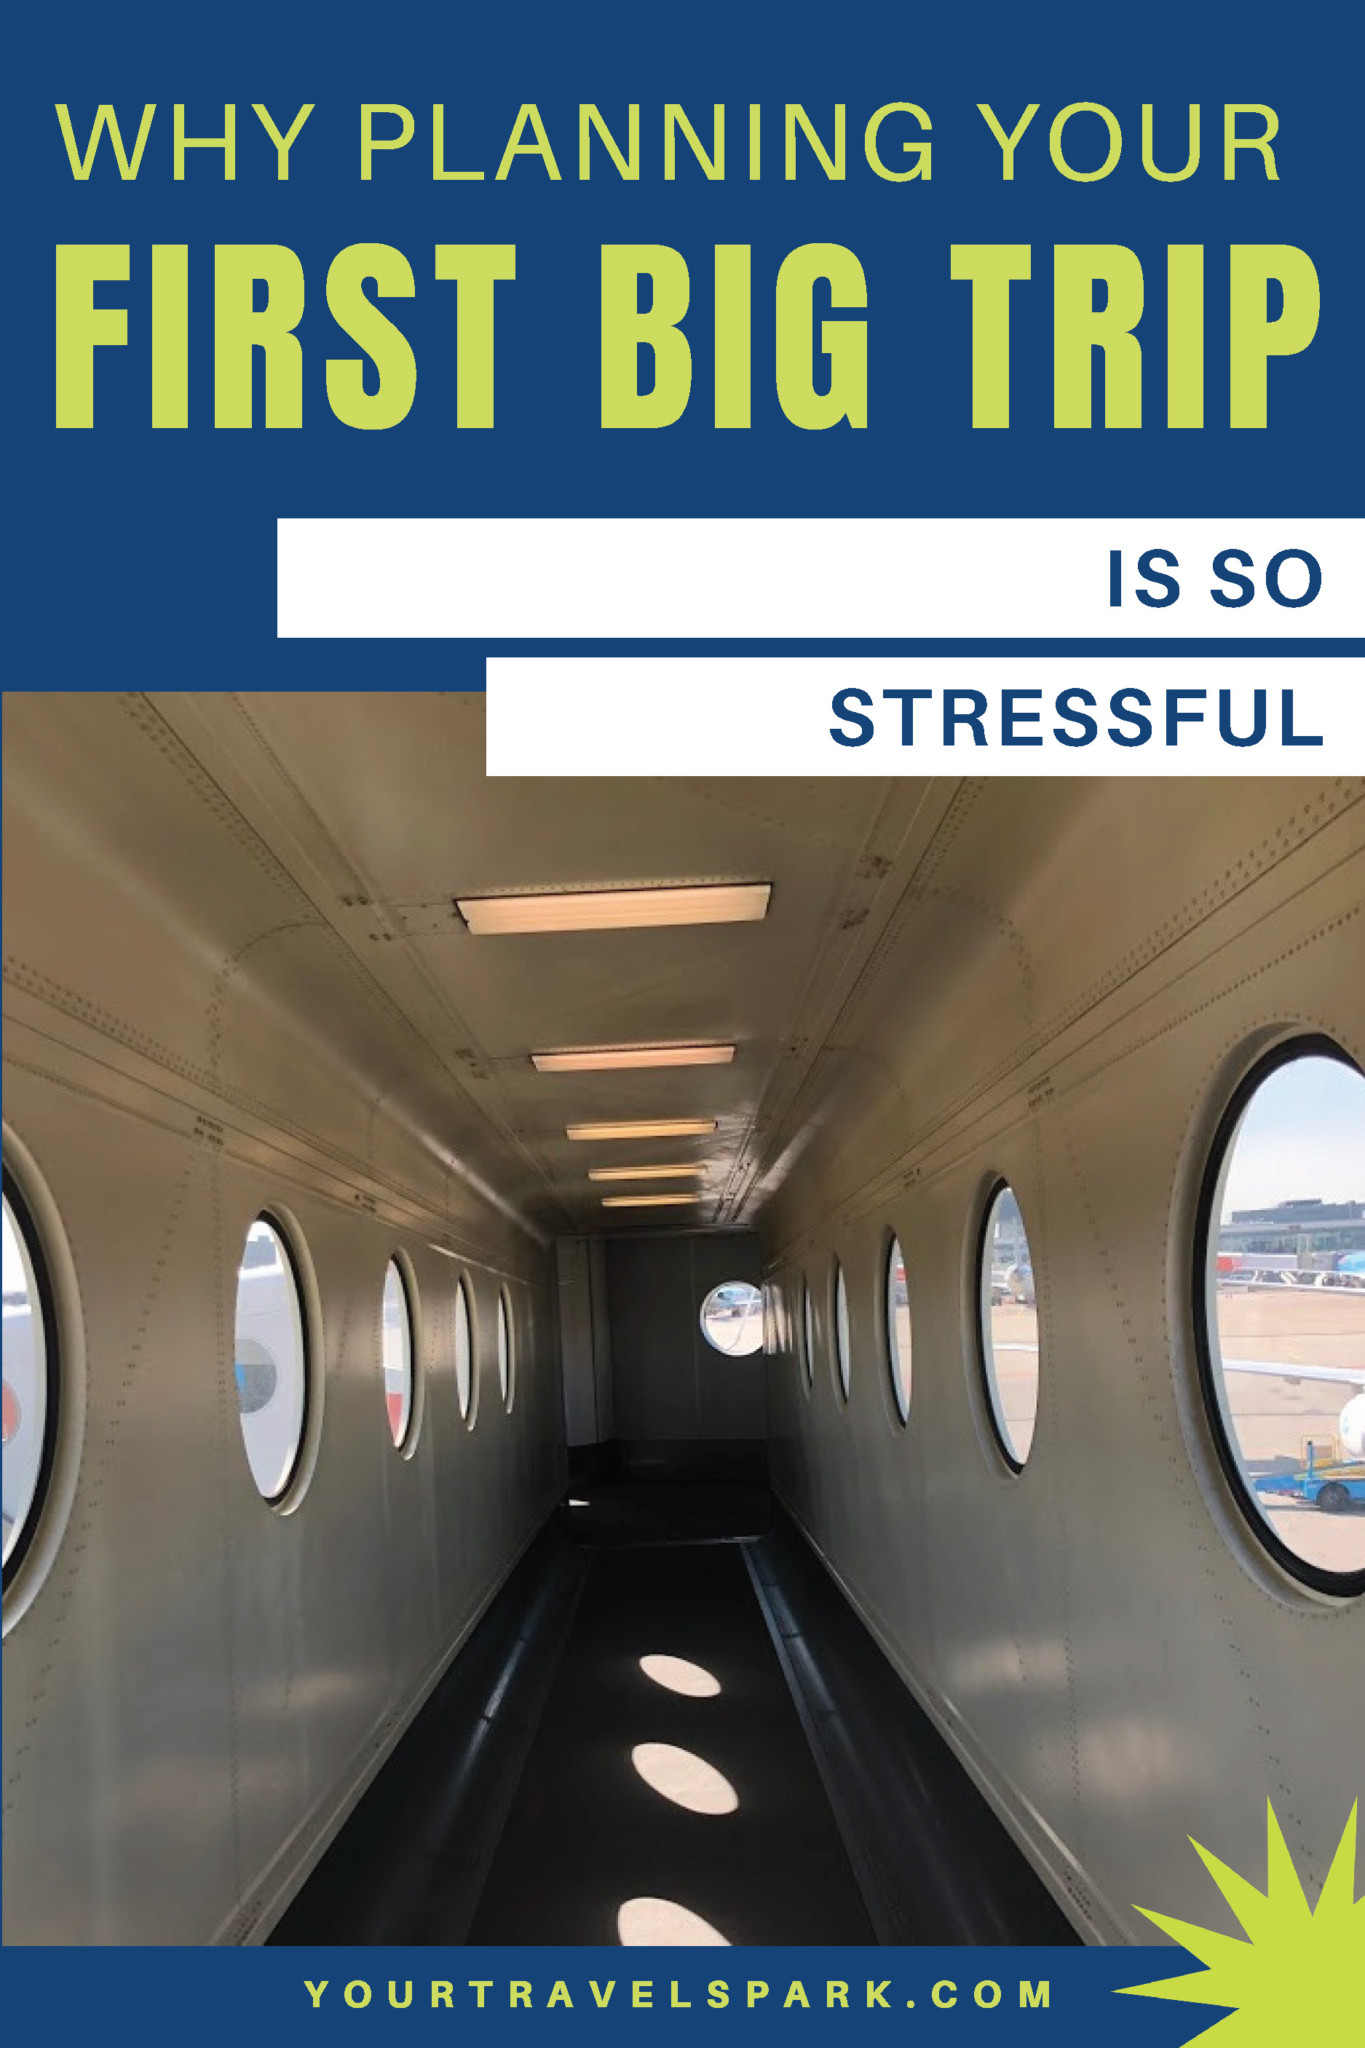 It seems like planning your first big trip is so much more stressful than every trip after it. Here are some reasons planning your first big trip is so stressful. #travel #travelplanning #travelplan #itinerary #travelstress #planningstress #travelplanningstress